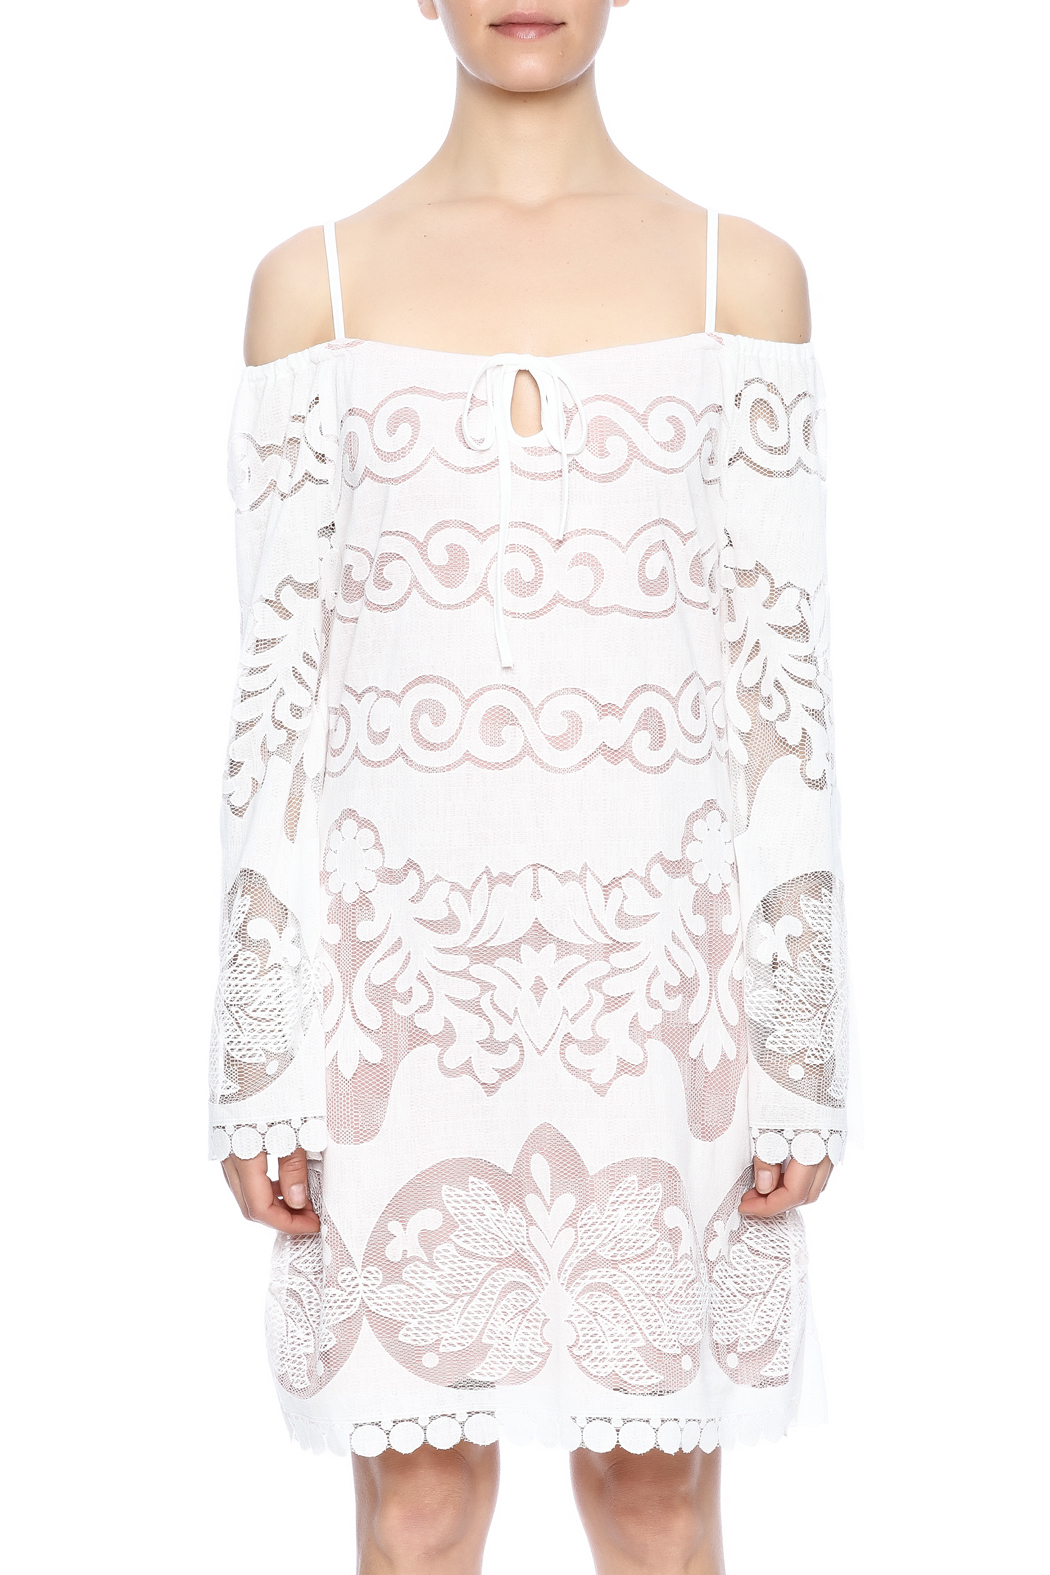 Union of Angels White Lace Dress - Side Cropped Image